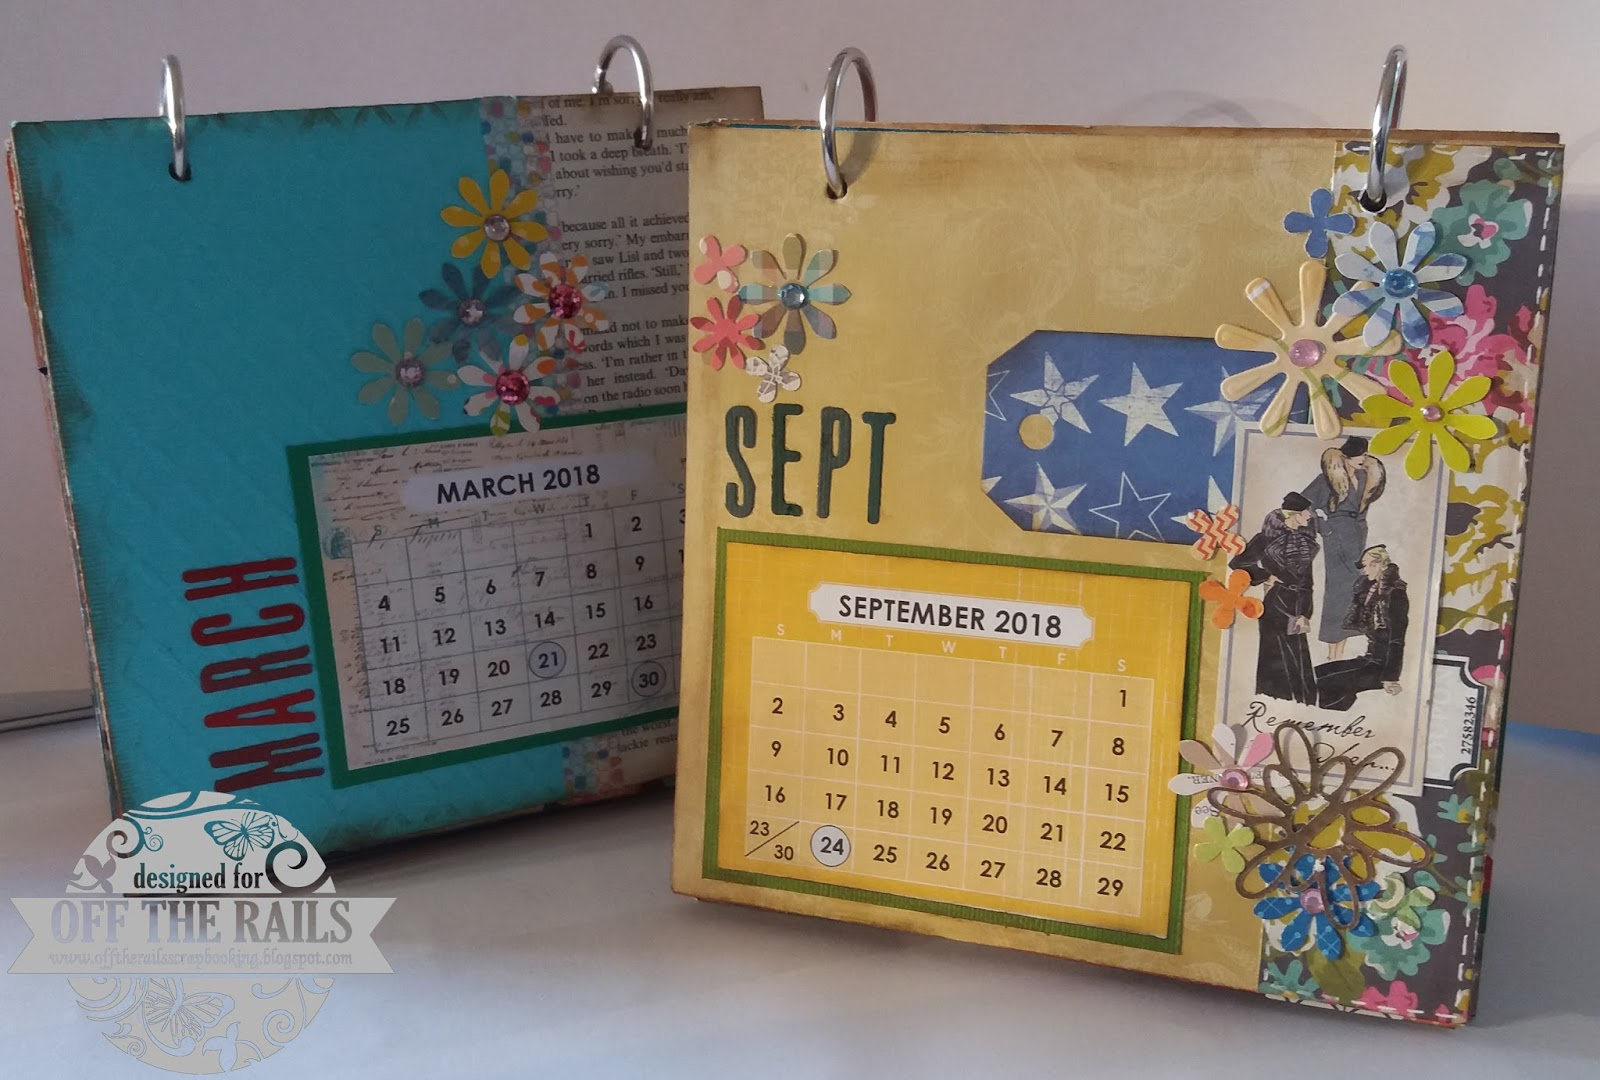 off the rails scrapbooking calendar tutorial with cathy